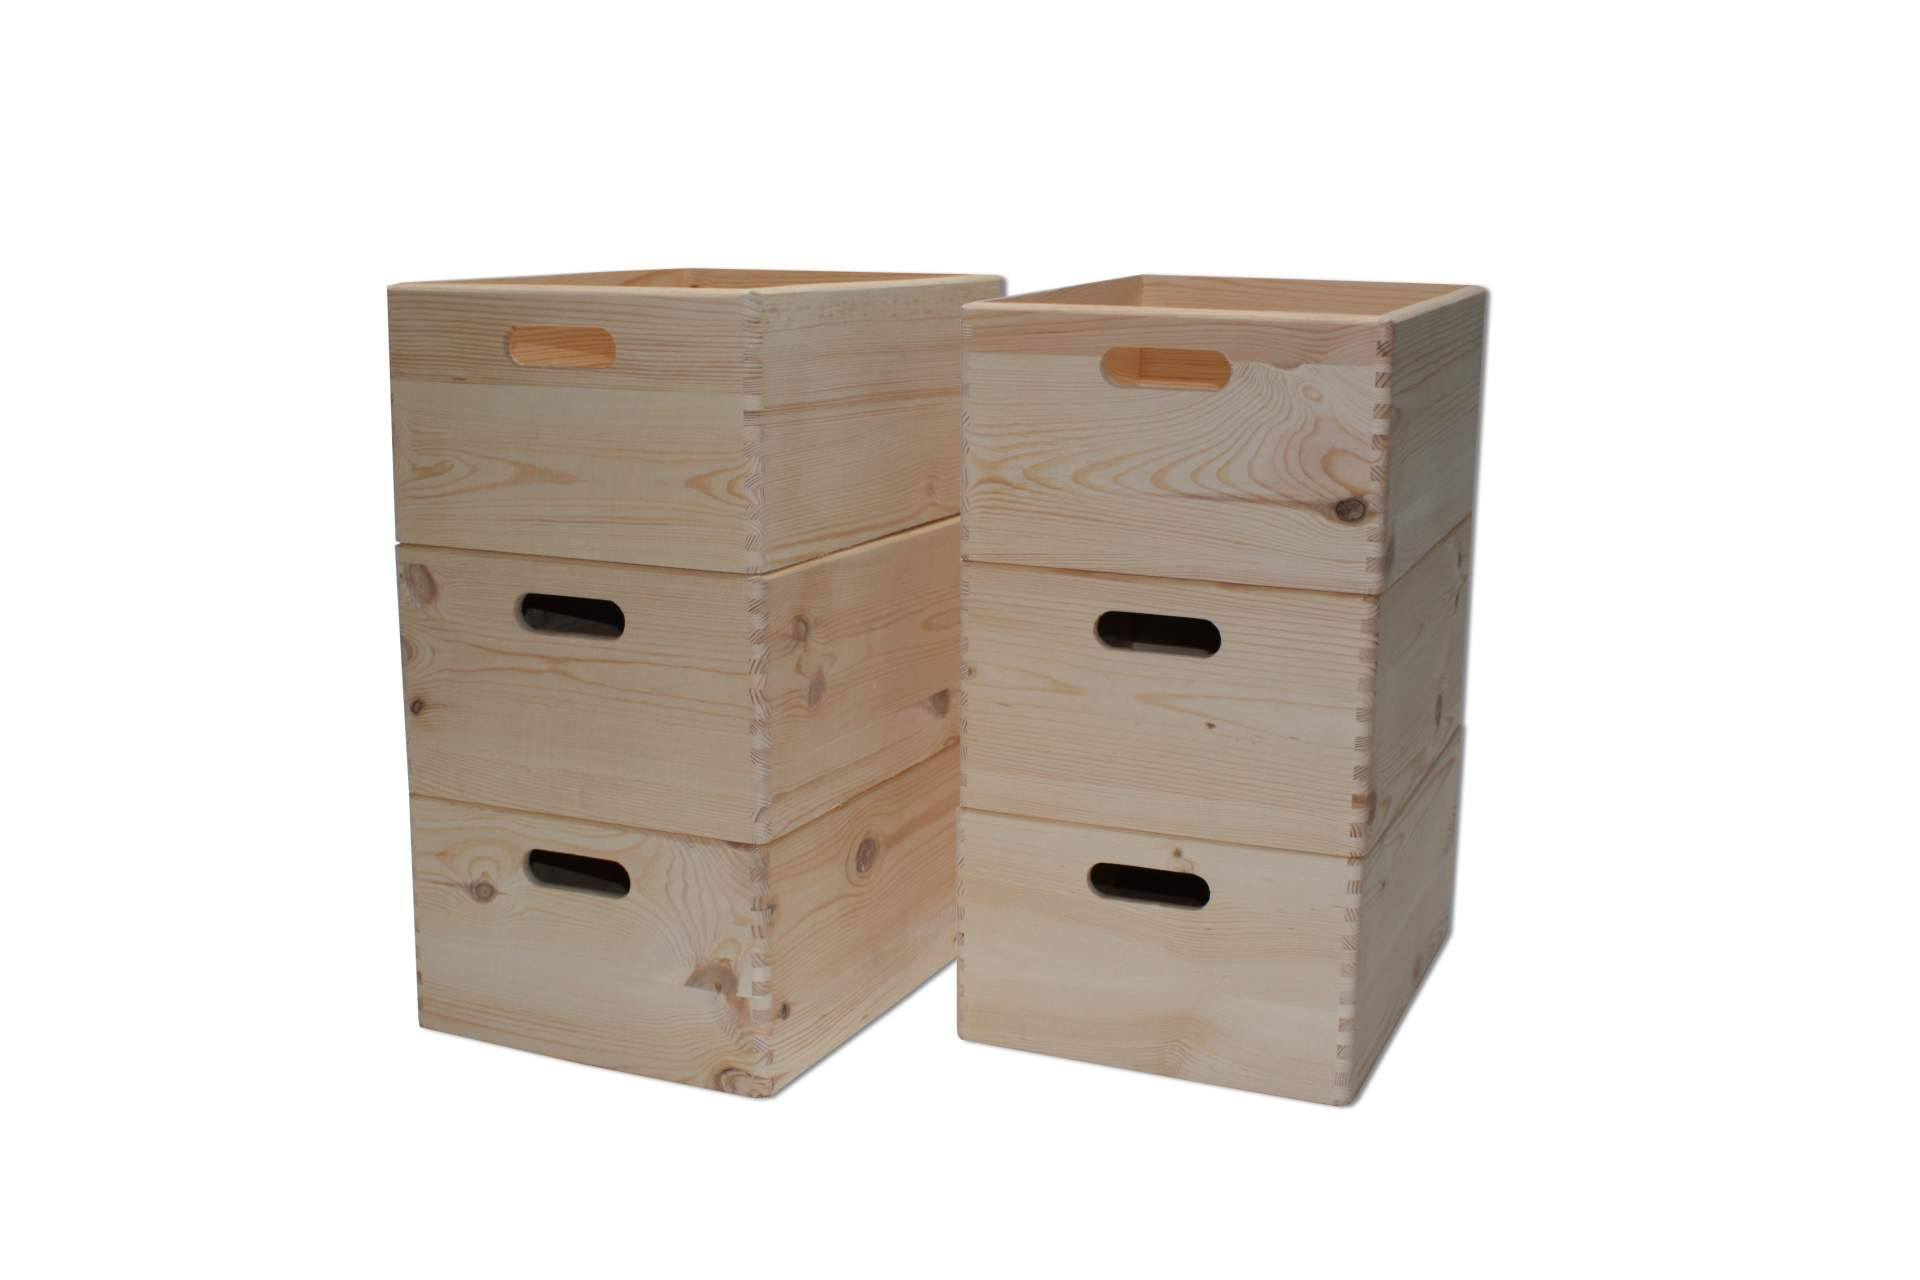 holzkiste 6 st ck box 40 x 30 x 19 cm werkzeug spielzeug kiste holz stapelbar ebay. Black Bedroom Furniture Sets. Home Design Ideas